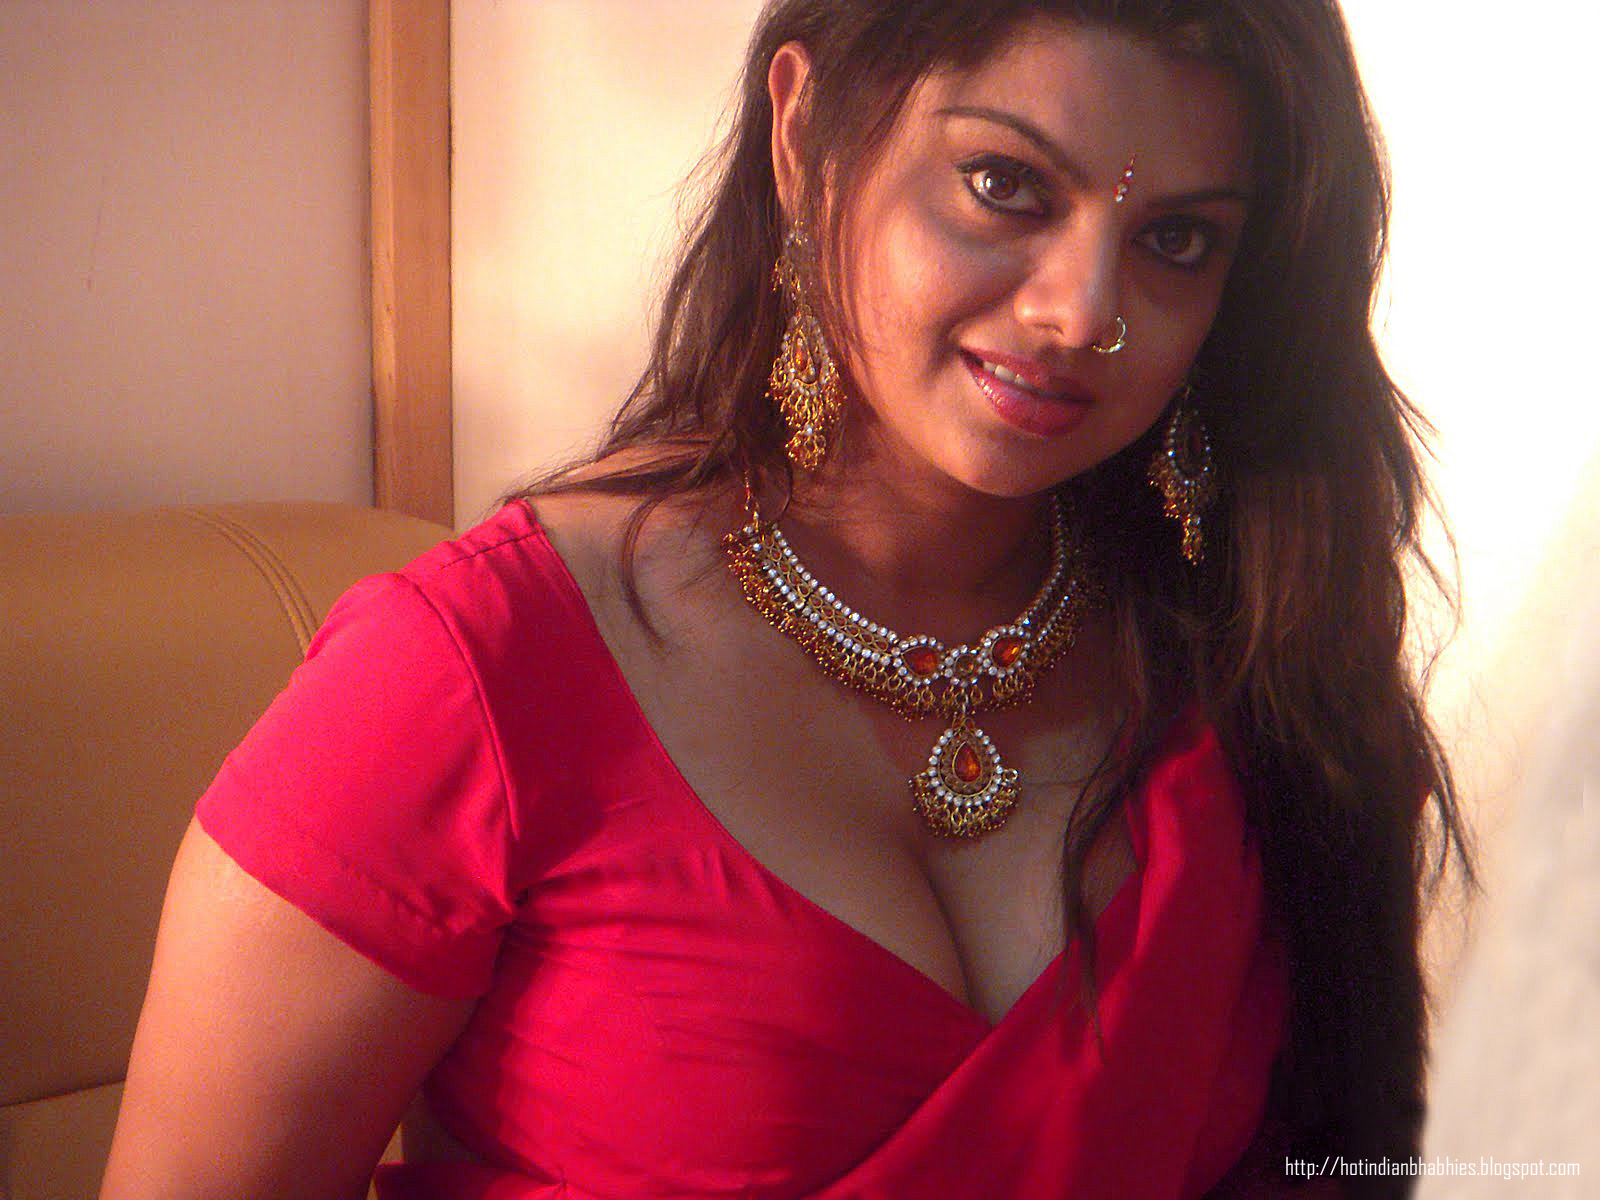 1 Swathi Varma Hot Photo gallery arabic tamil indian sexy babes house wife sex pictures bed room pictures nude pisture sari pictures big boobs tits pictures indian tamil big ass hot bikini Buy sex toy, penis sleeve, Erection Rings, Penis sleeve hold ejaculation ...